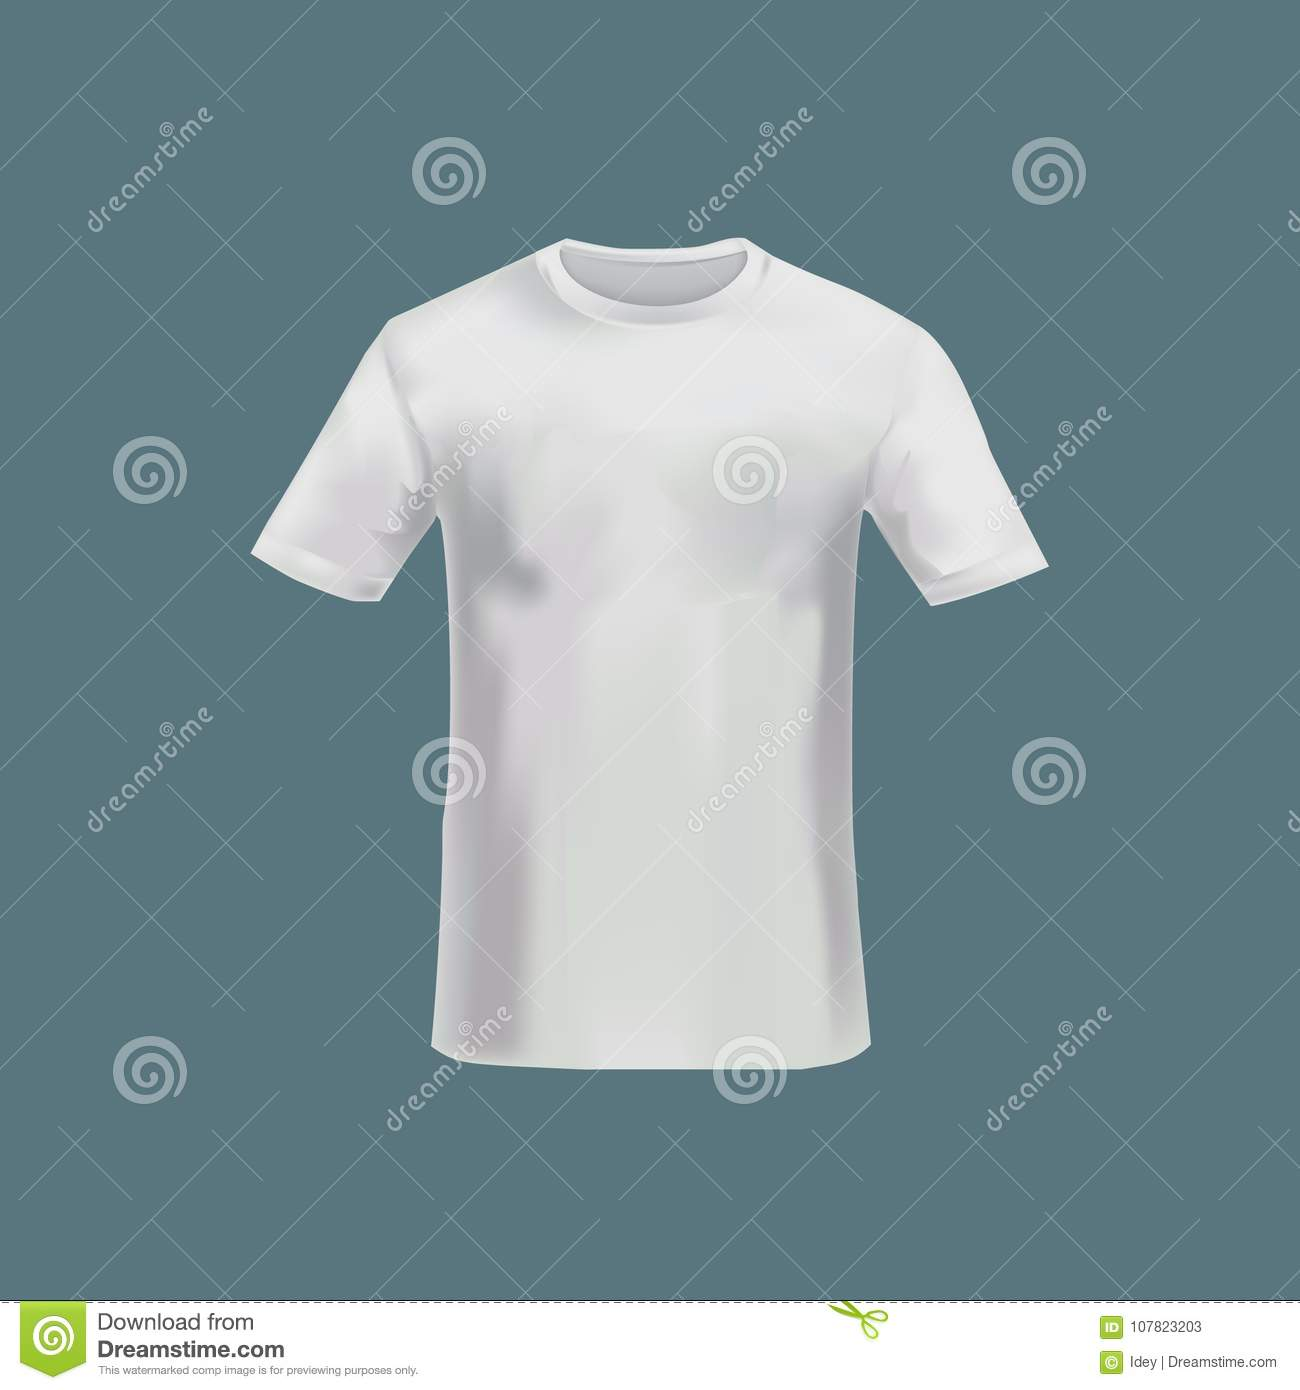 37c9100bd2a White T Shirt Tunic - DREAMWORKS